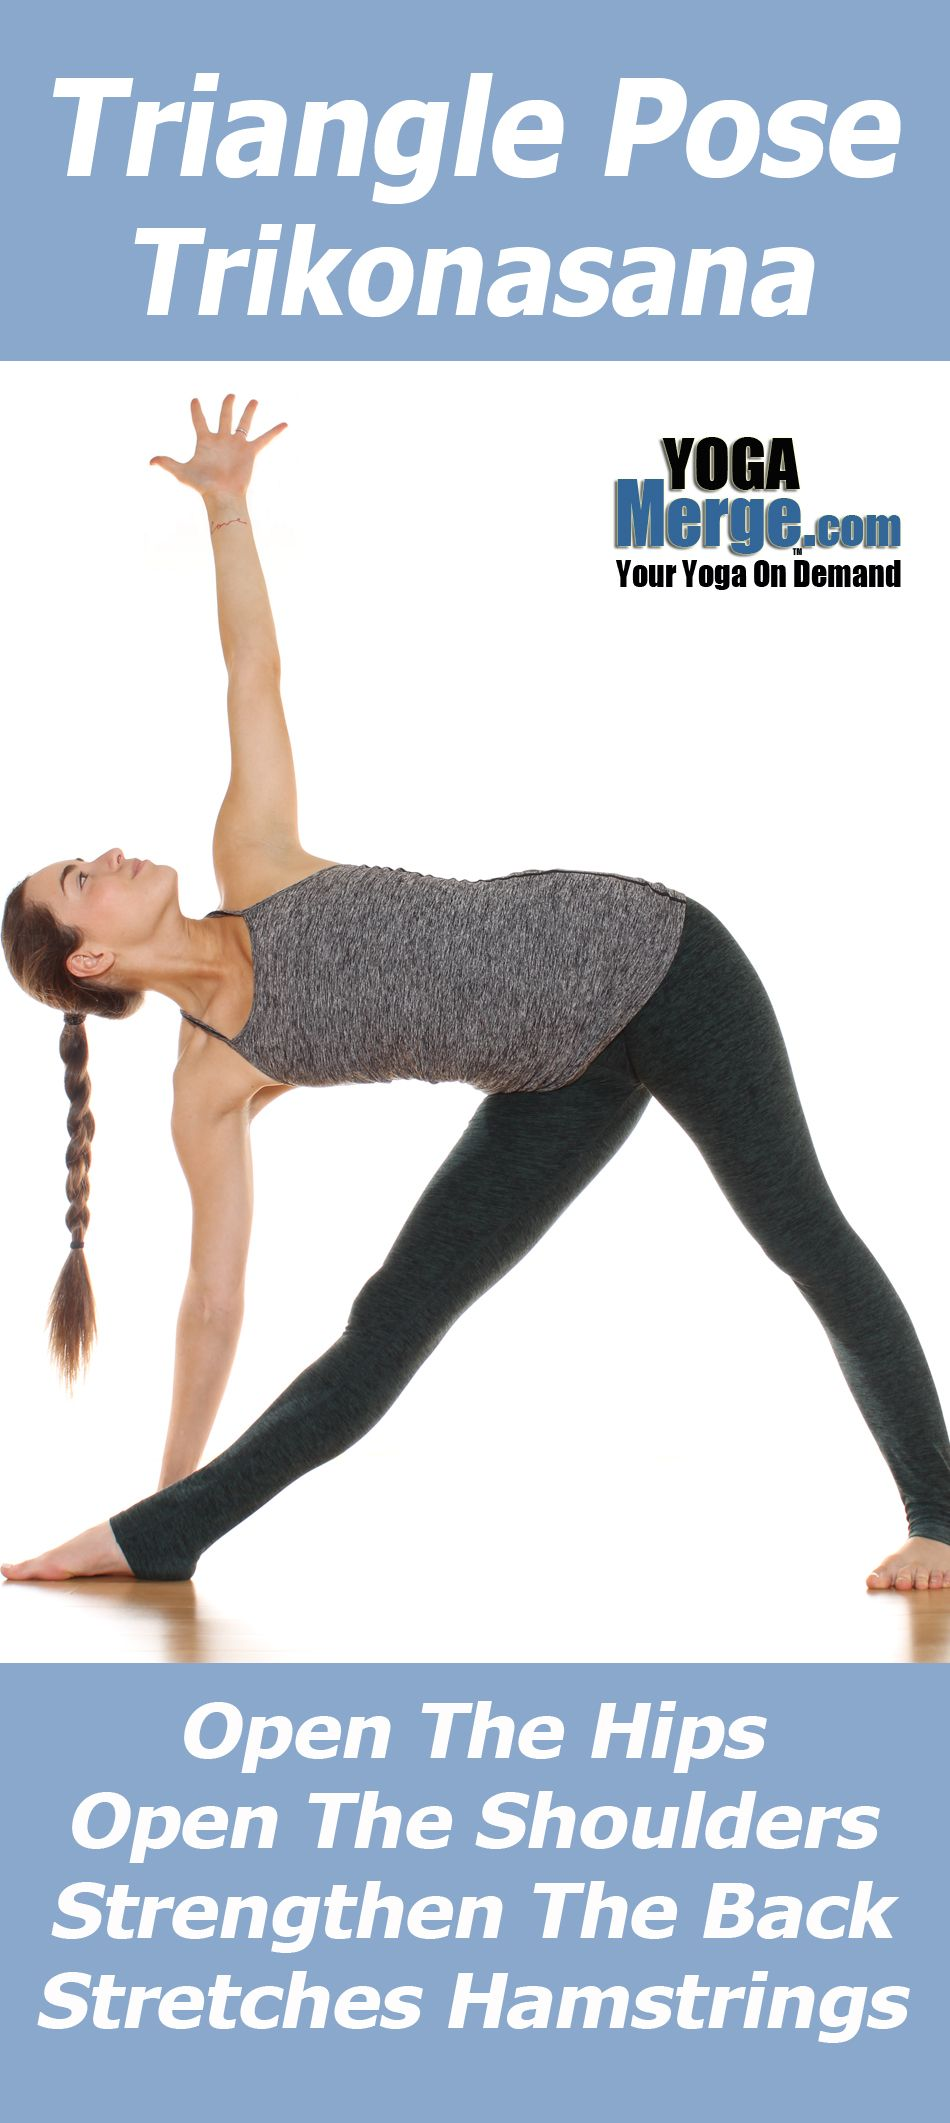 Learn More About The Benefits Of Yoga Pose Triangle Pose Also Known As Trikonasana Pose This Pose Is Packed Wit Online Yoga Videos Yoga Videos Yoga Articles